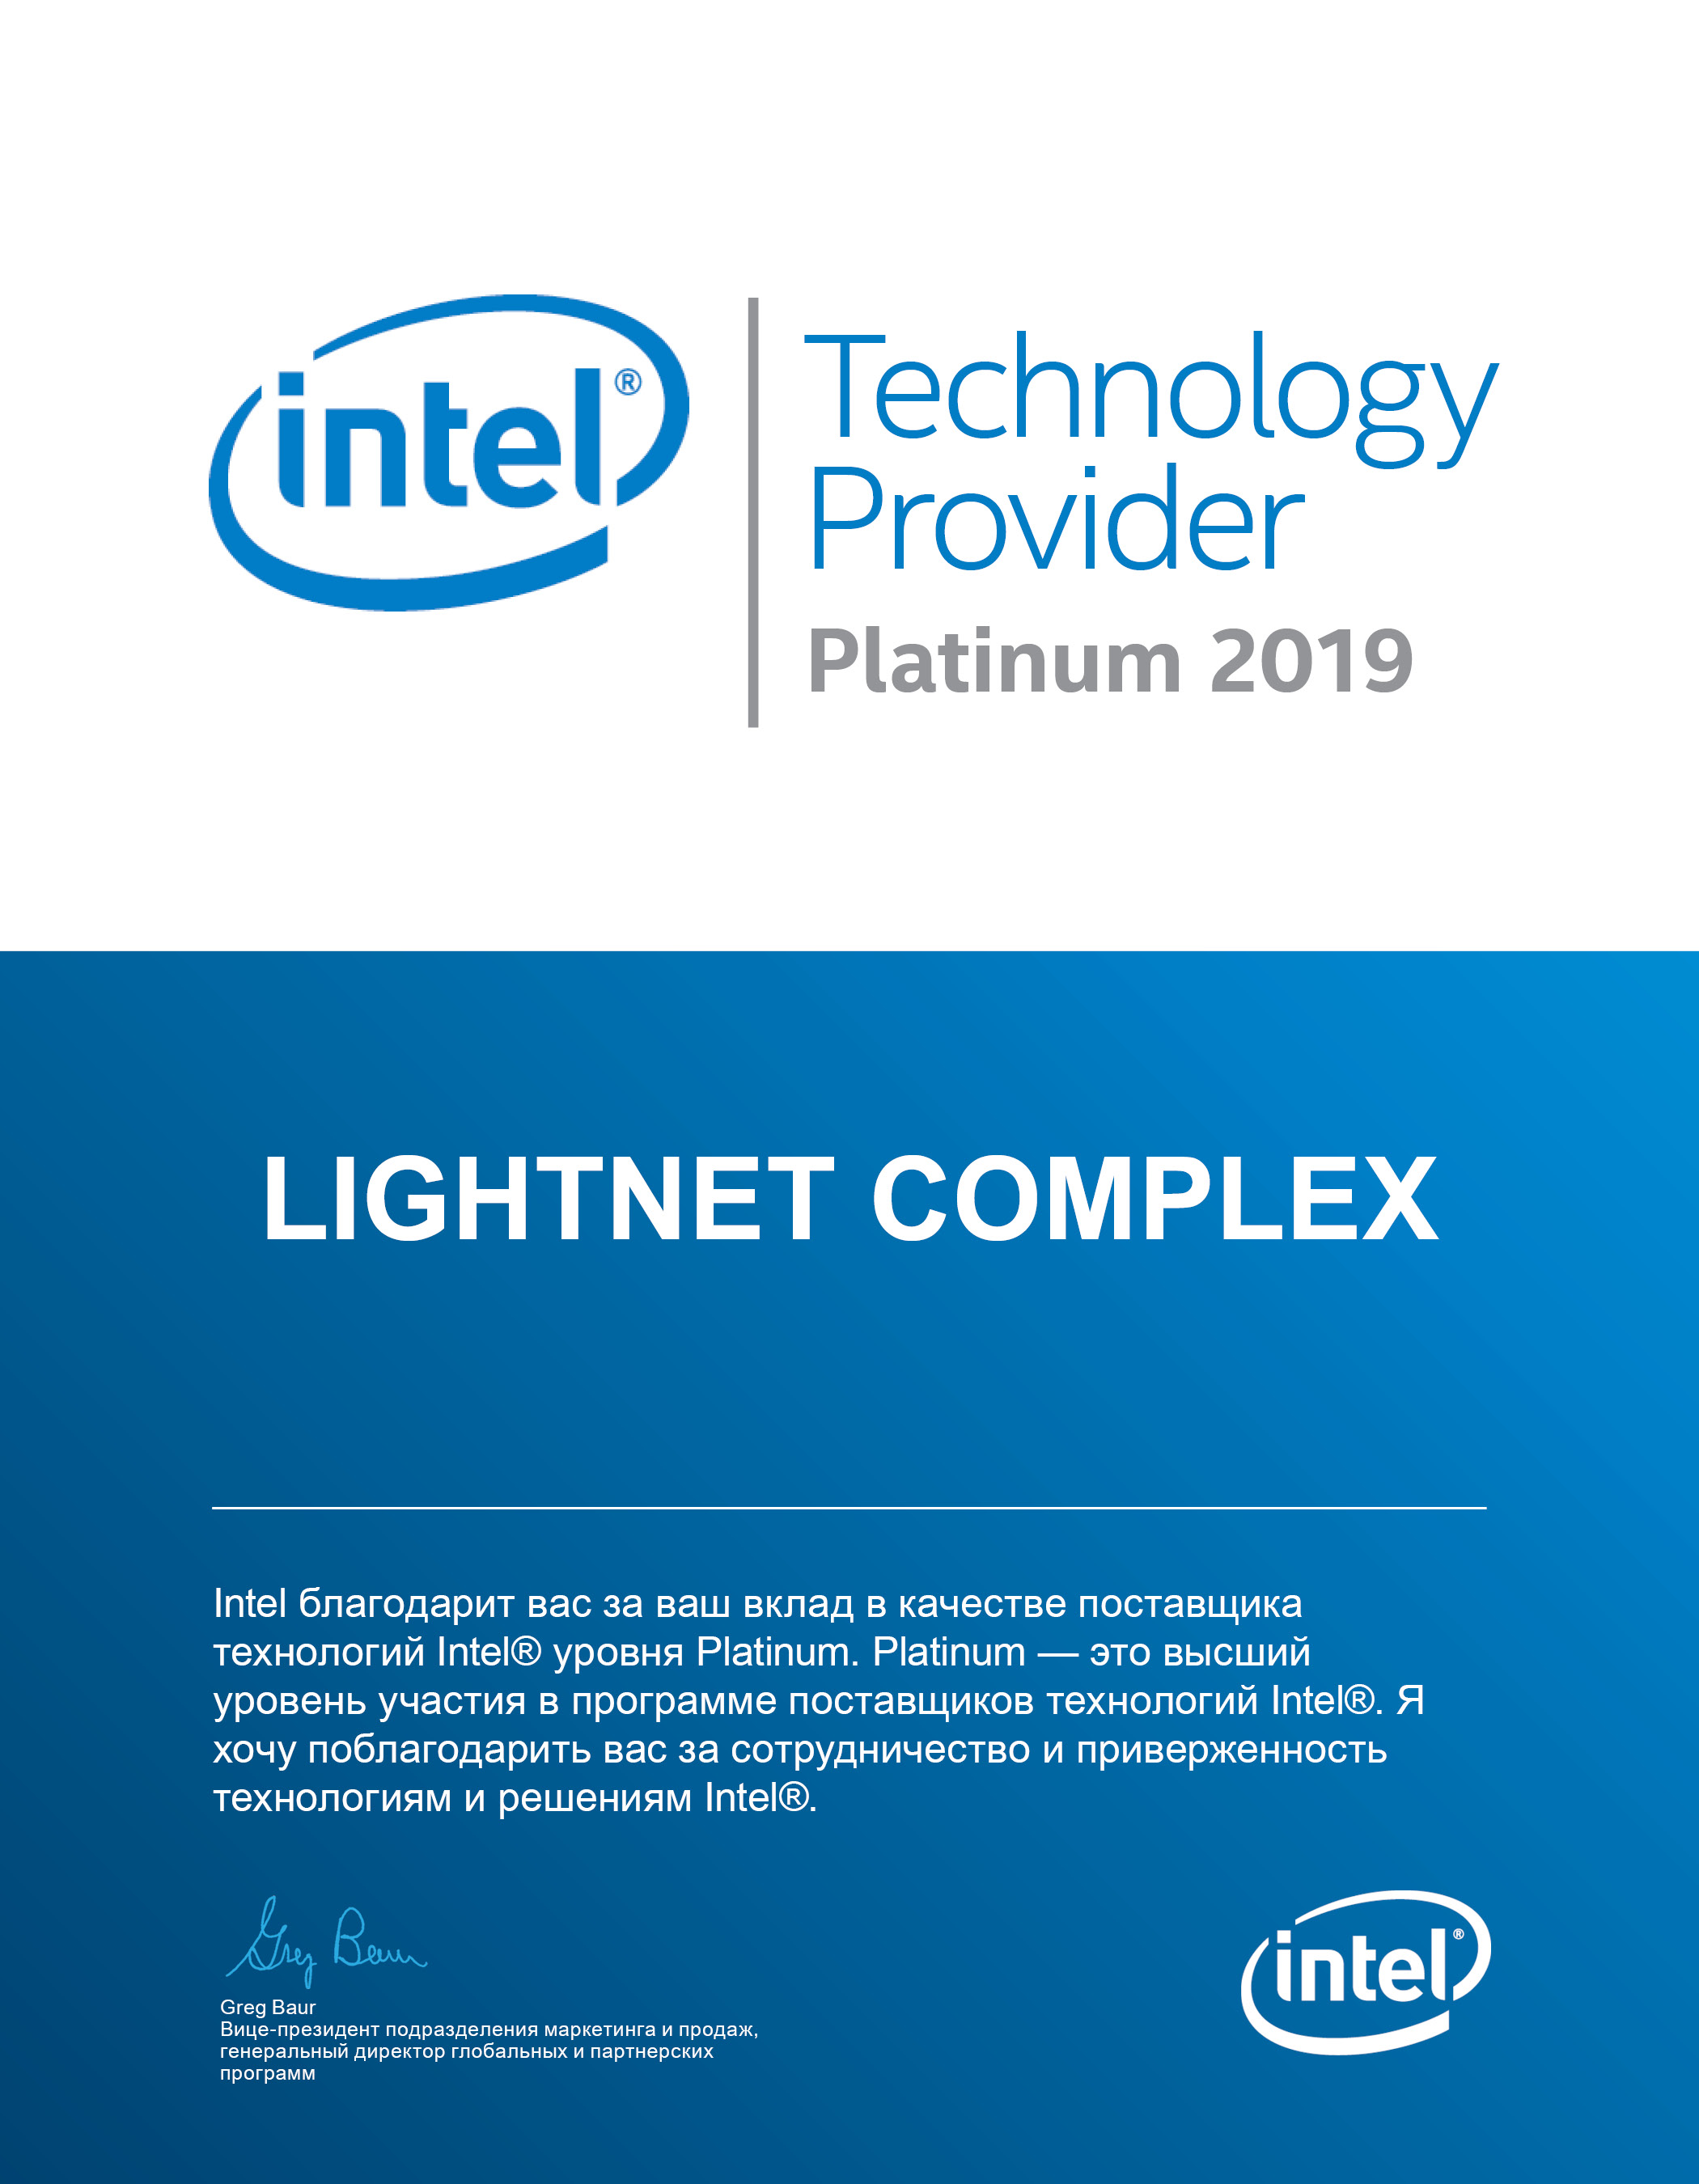 Intel - Platinum Intel Technology Provider